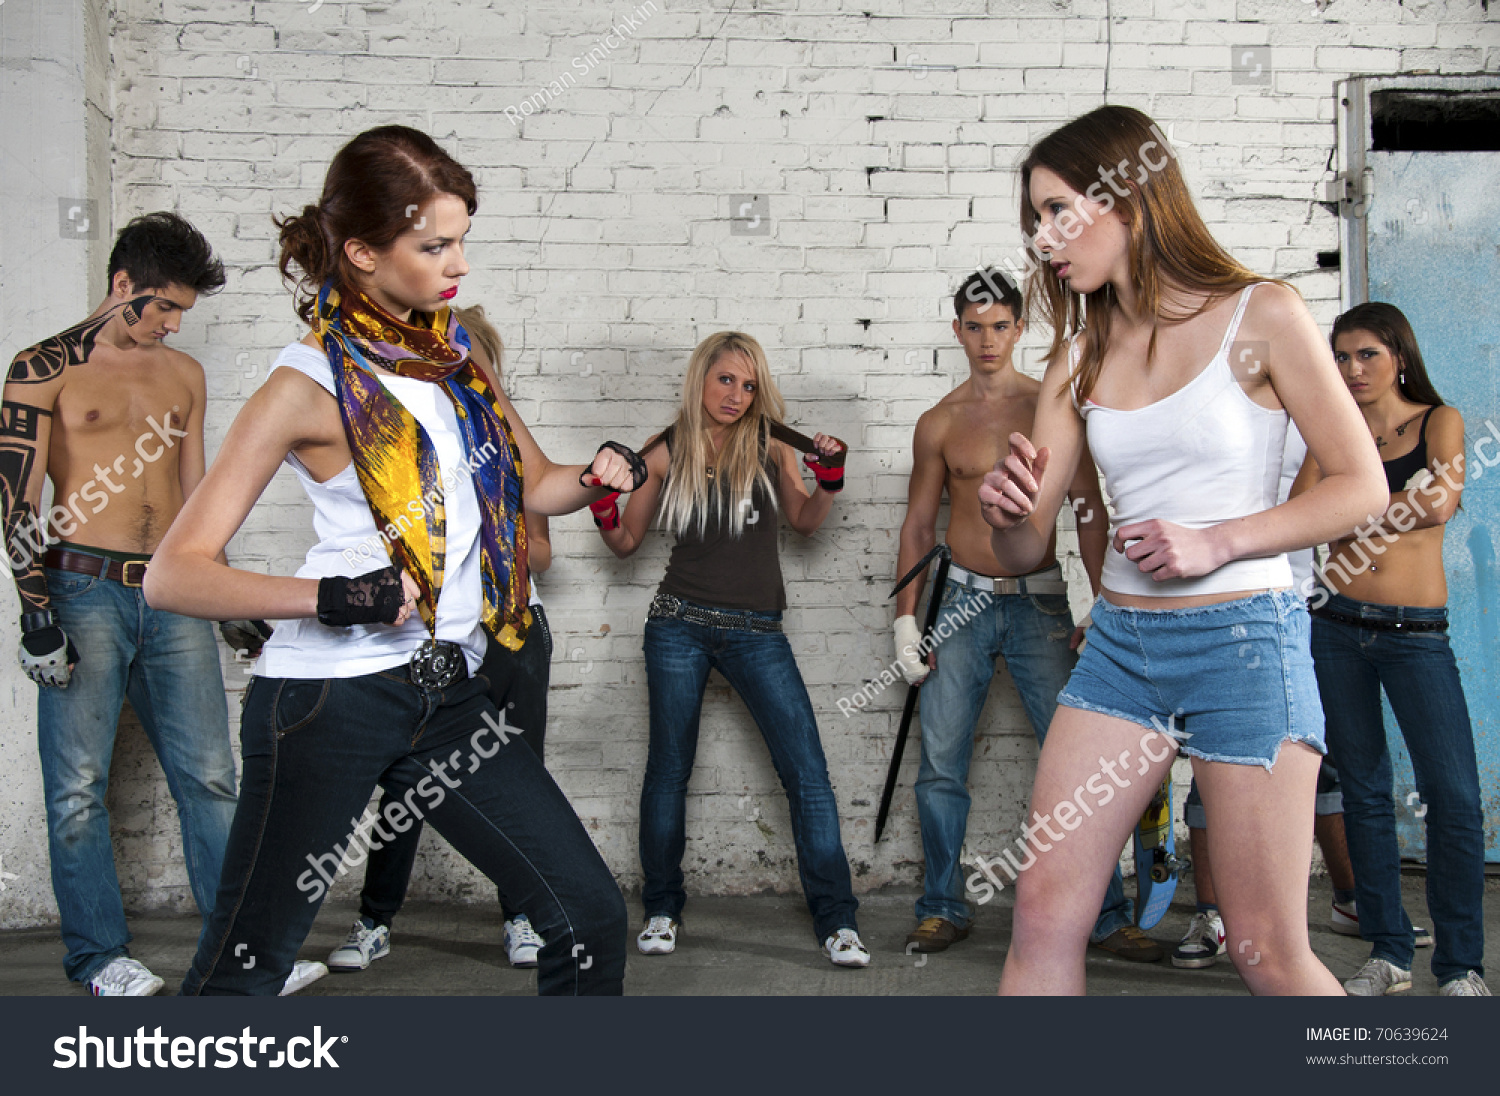 Girls fighting photos